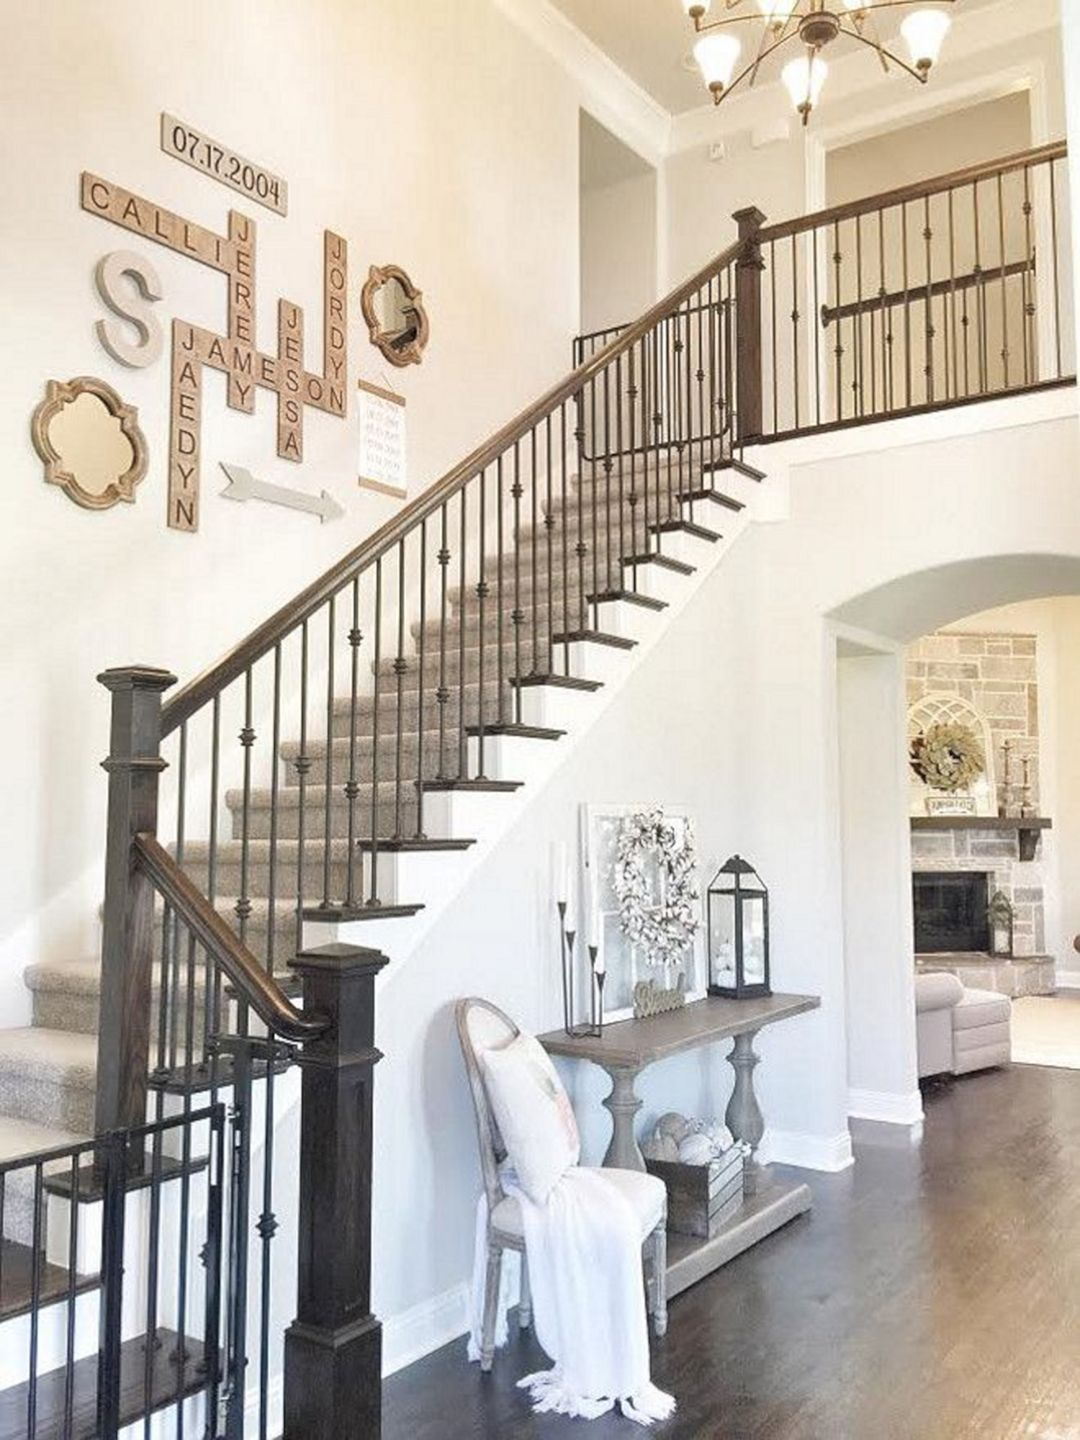 65+ Awesome Arranging Pictures On A Stair Wall Ideas | Arranging ...